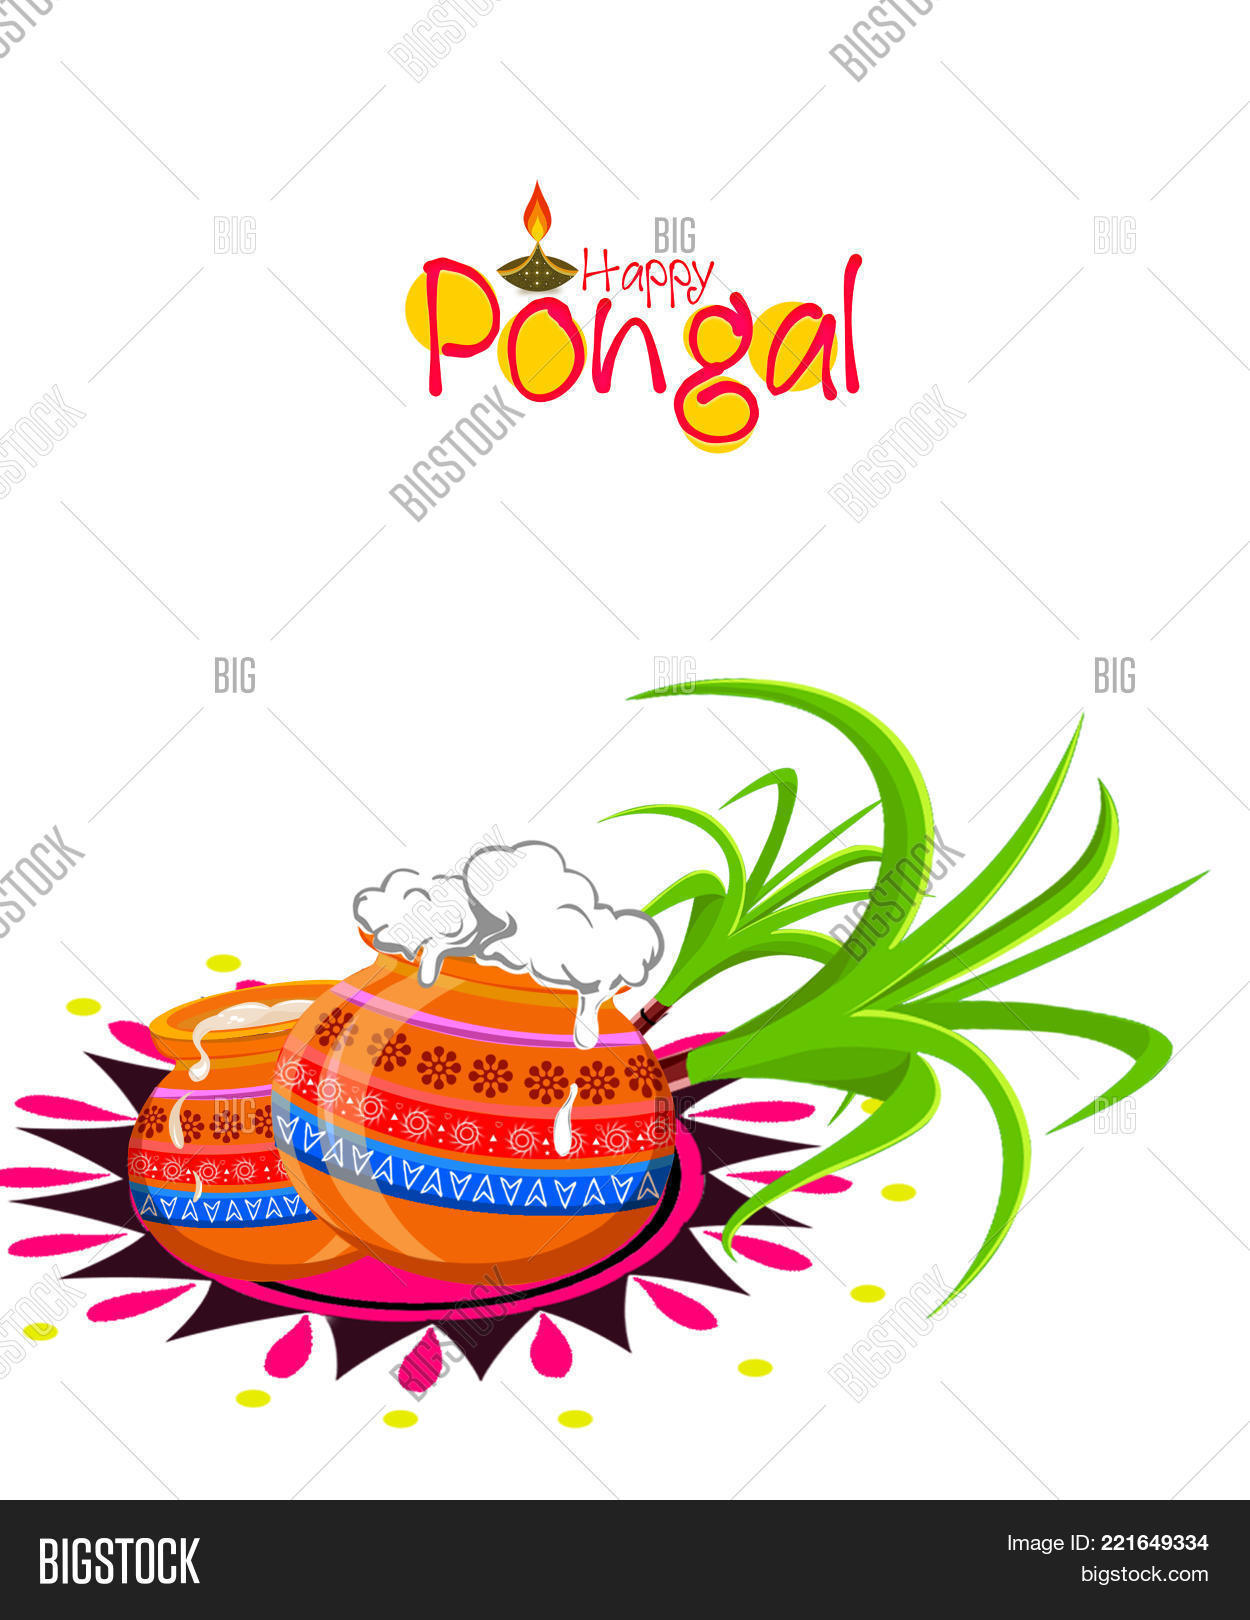 Happy pongal greeting image photo free trial bigstock happy pongal greeting card on beautiful bright background poster postcard m4hsunfo